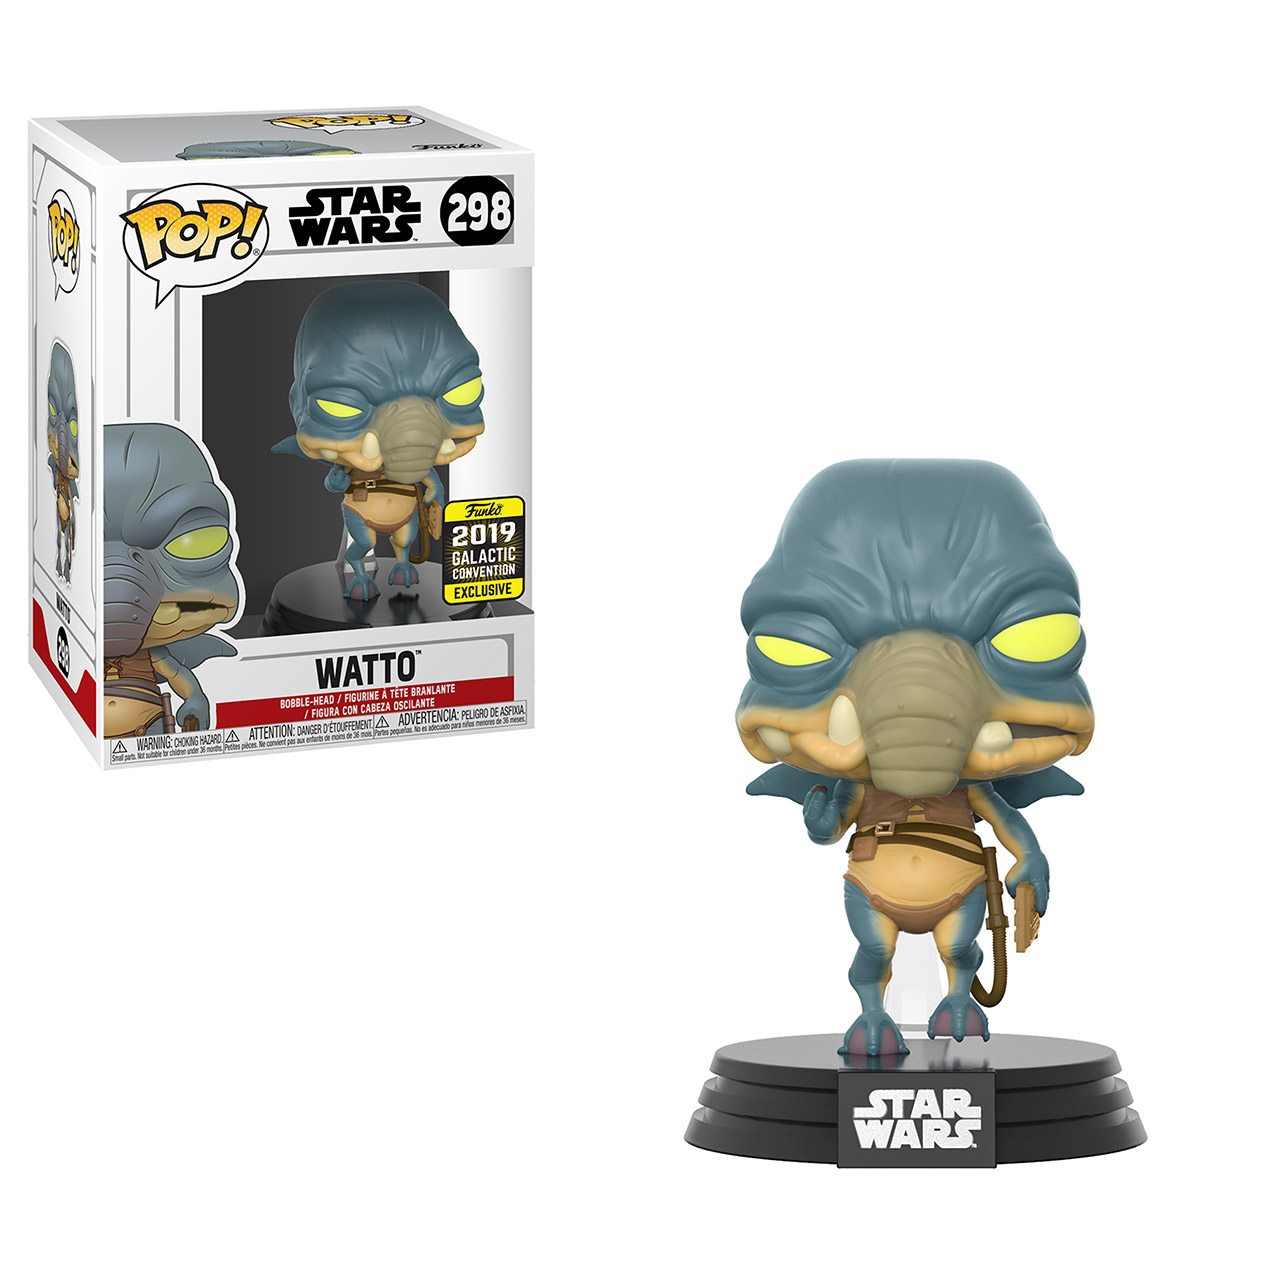 A Funko Pop! available only at Star Wars Celebration Chicago.